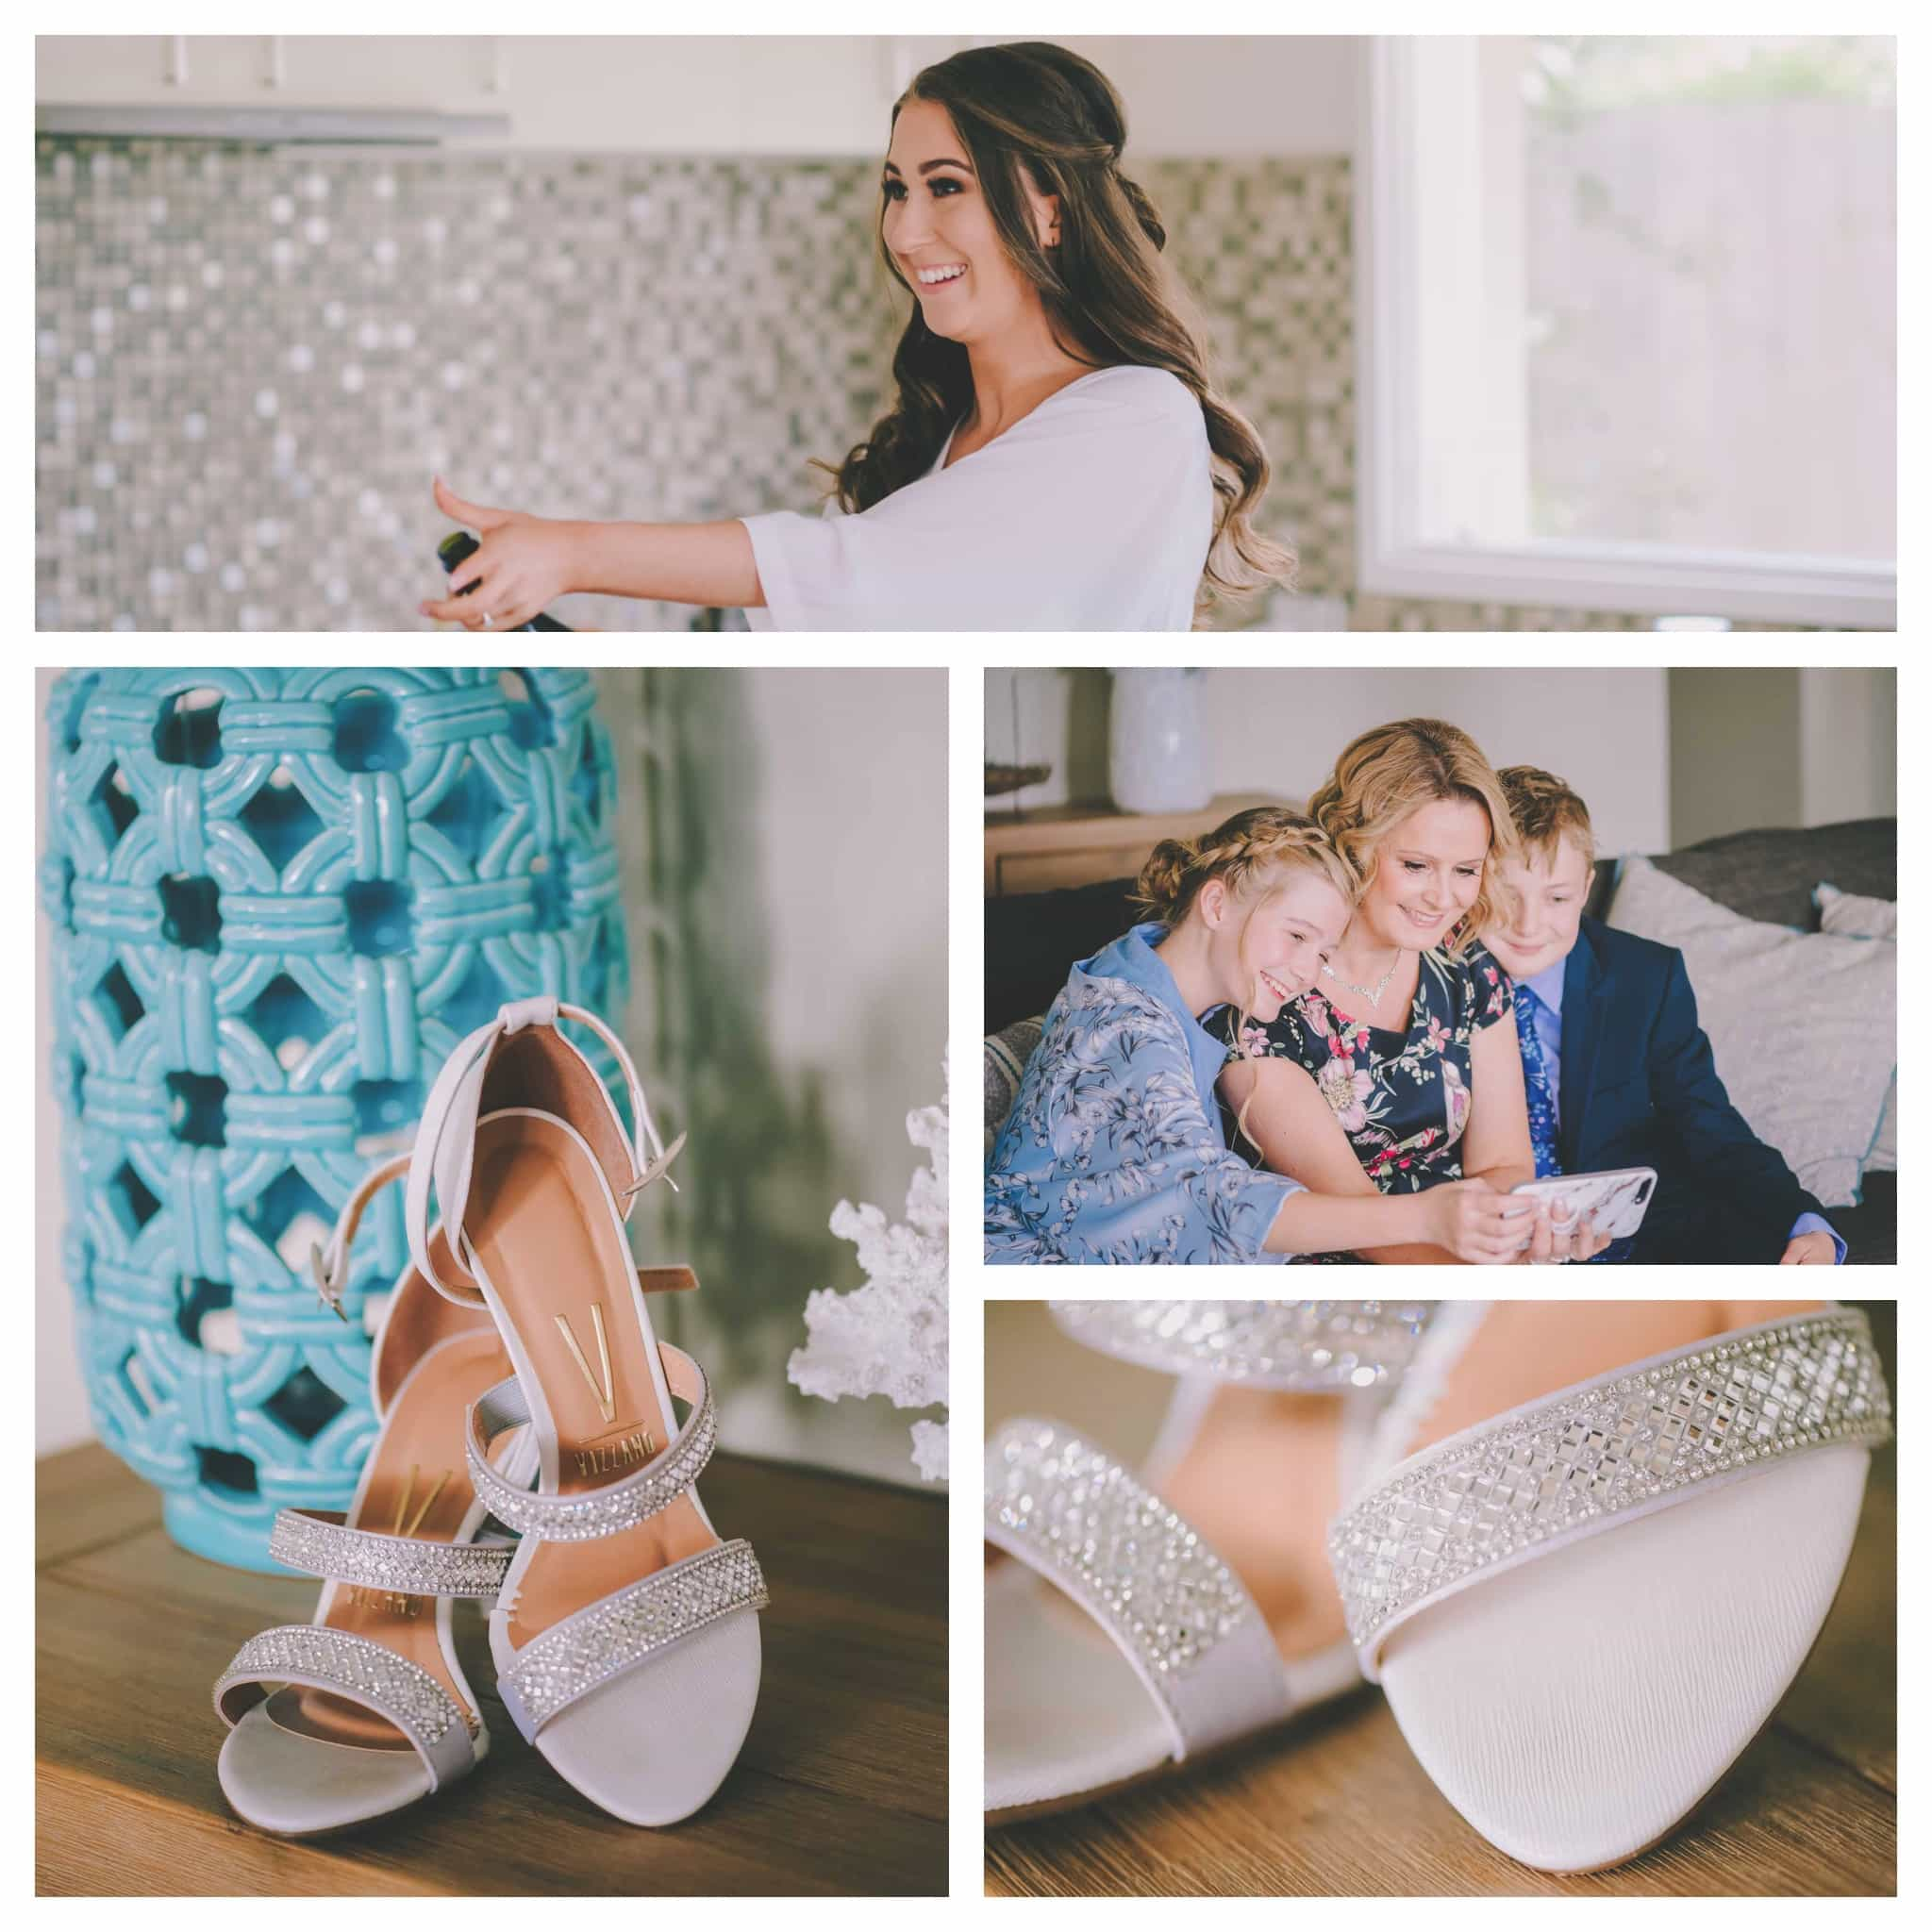 Images of getting ready for a Sorrento Beach wedding by Pause The Moment wedding photography.